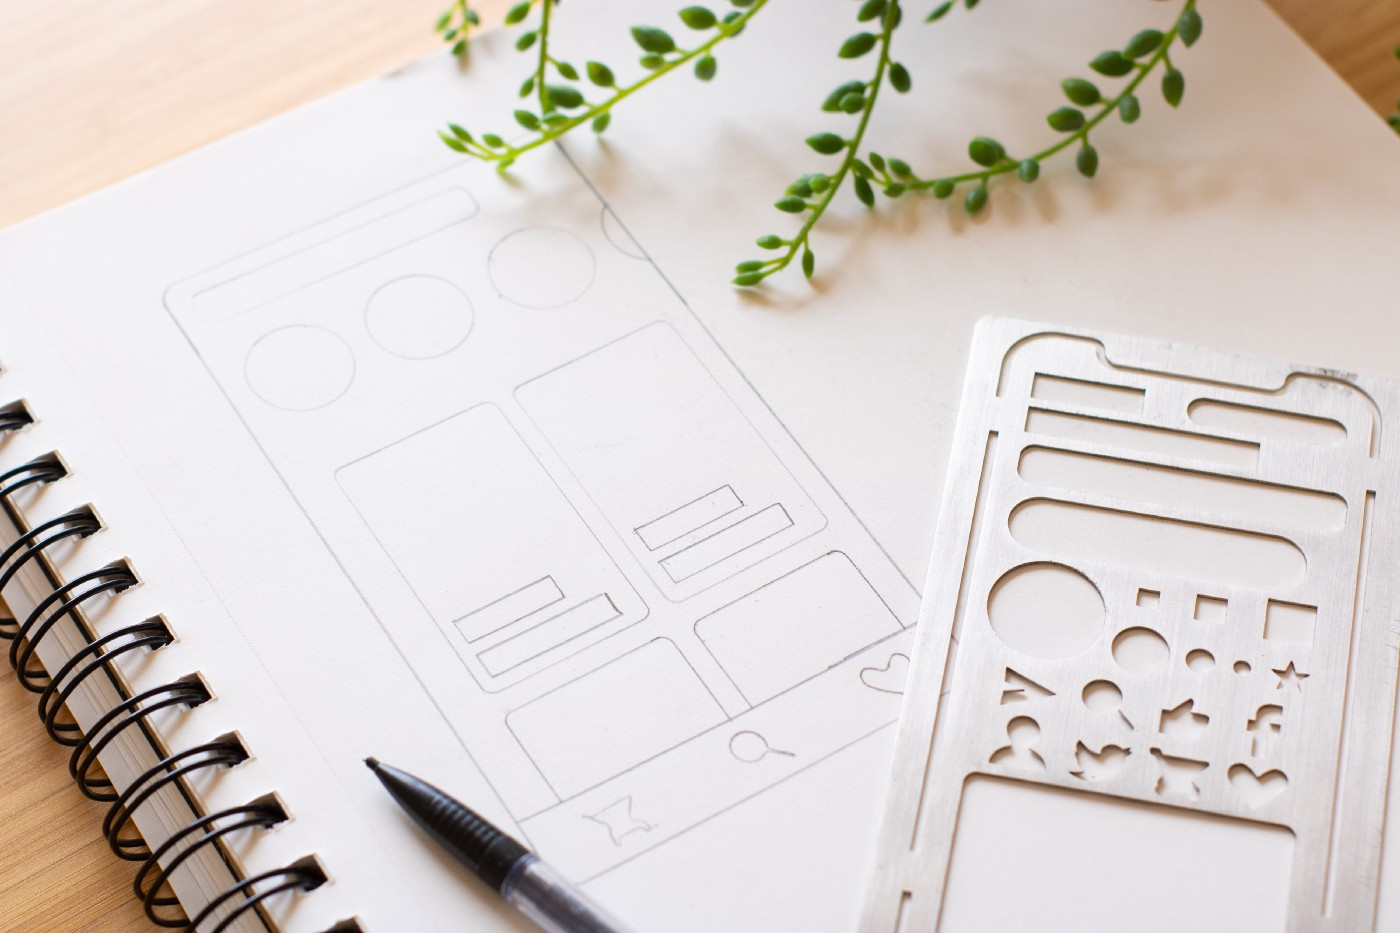 A wireframe on a notebook